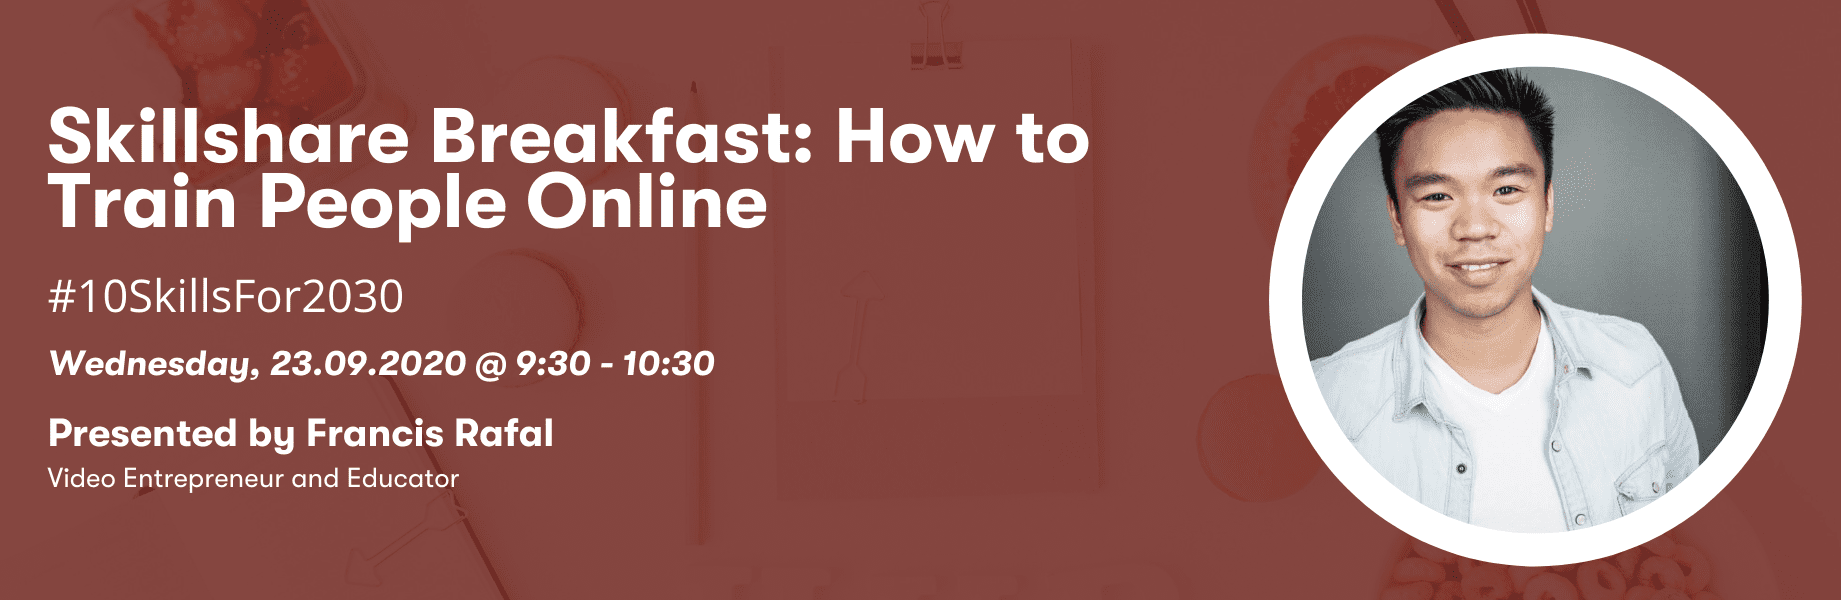 Skillshare Breakfast: How to train people online